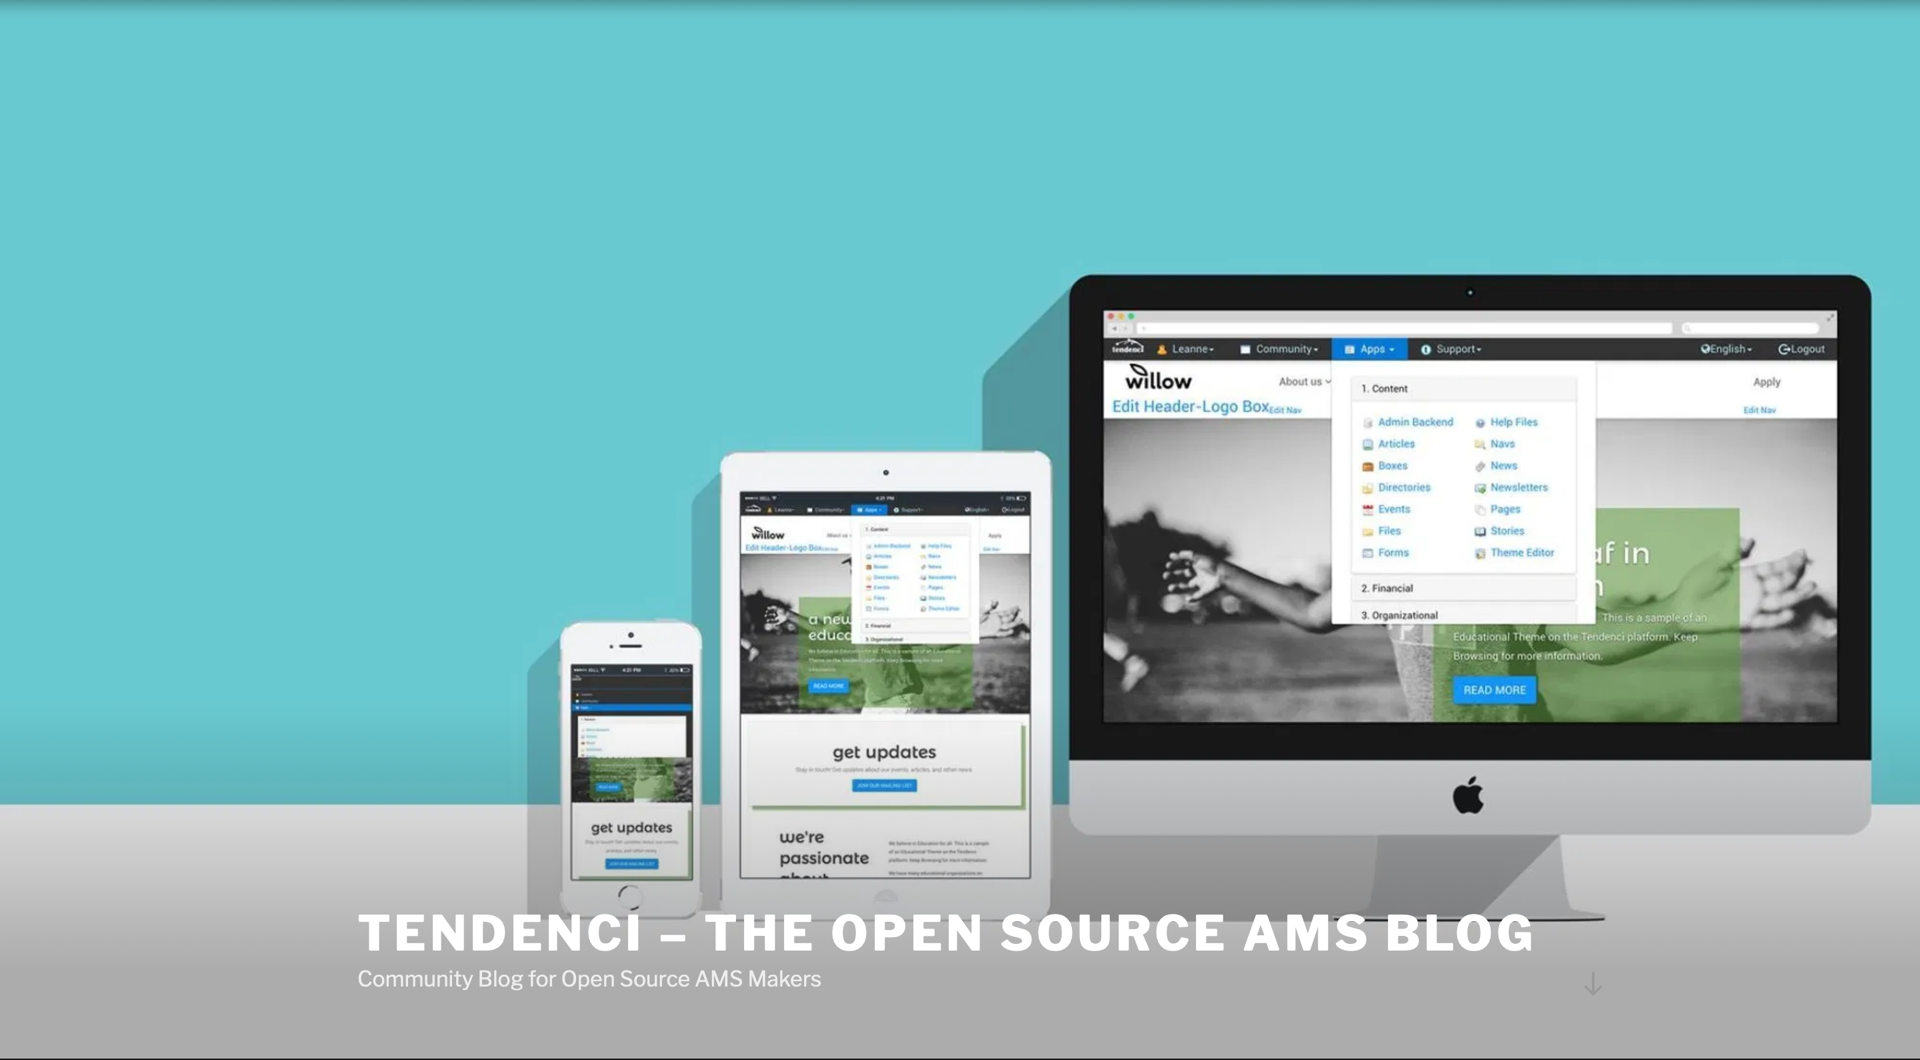 Screenshot of Tendenci WP Community Blog AMS Makers